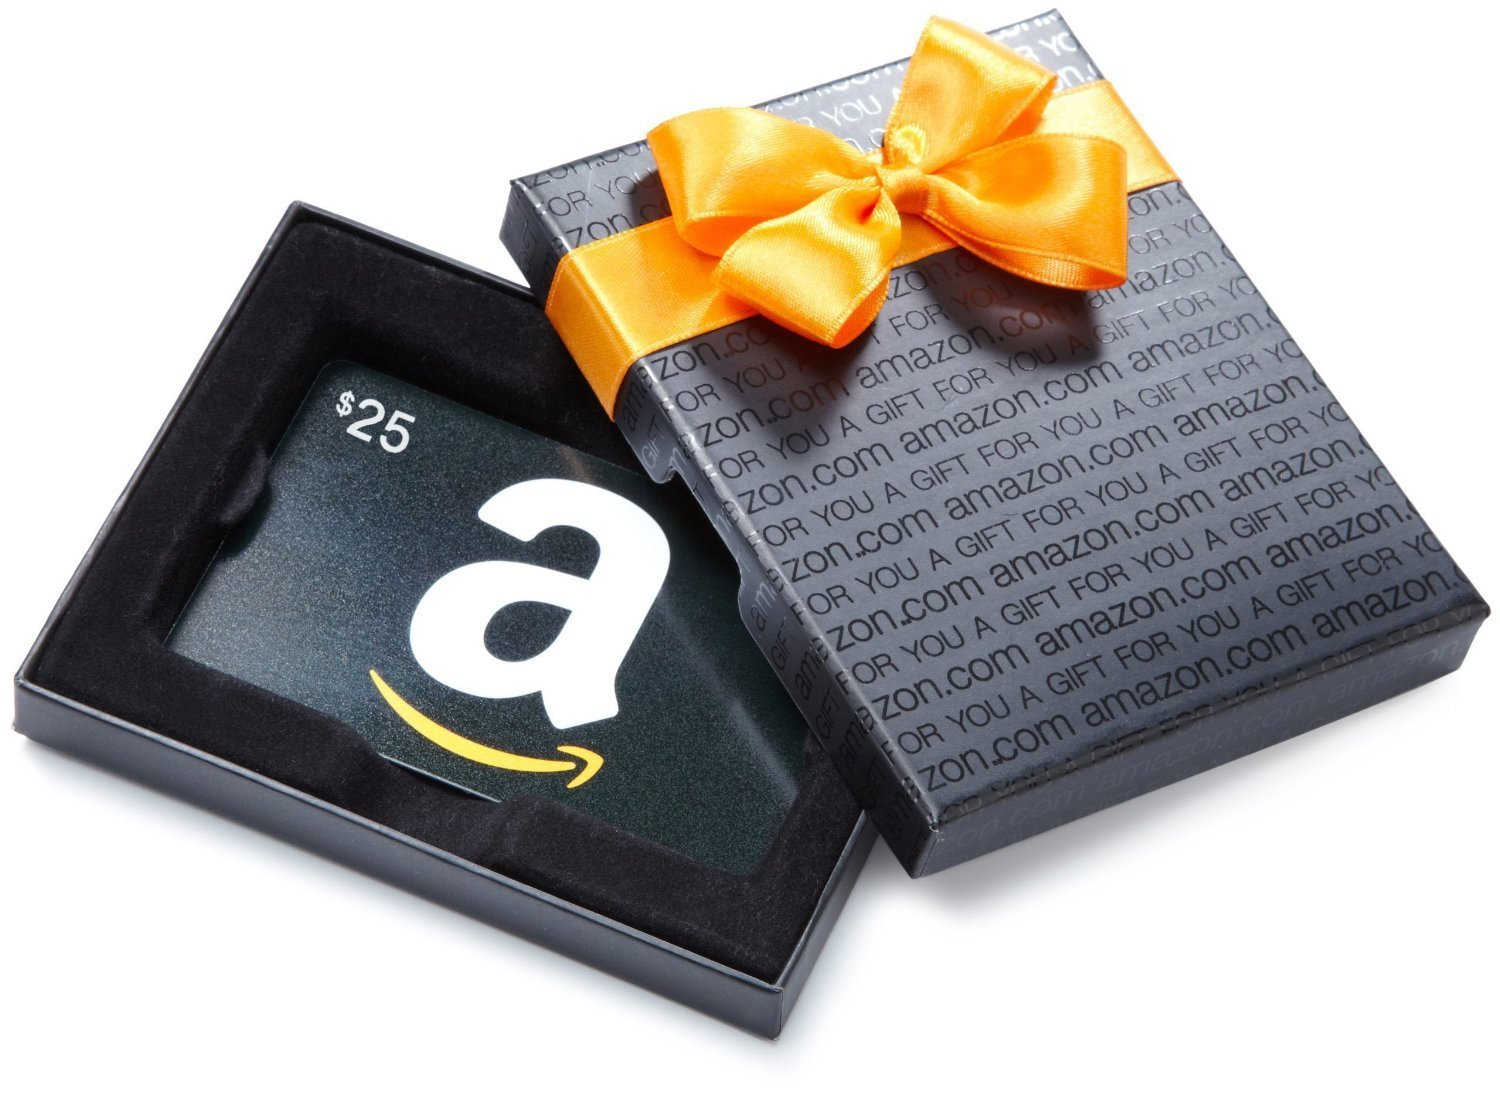 Gift Card | 25+ Gifts for Him